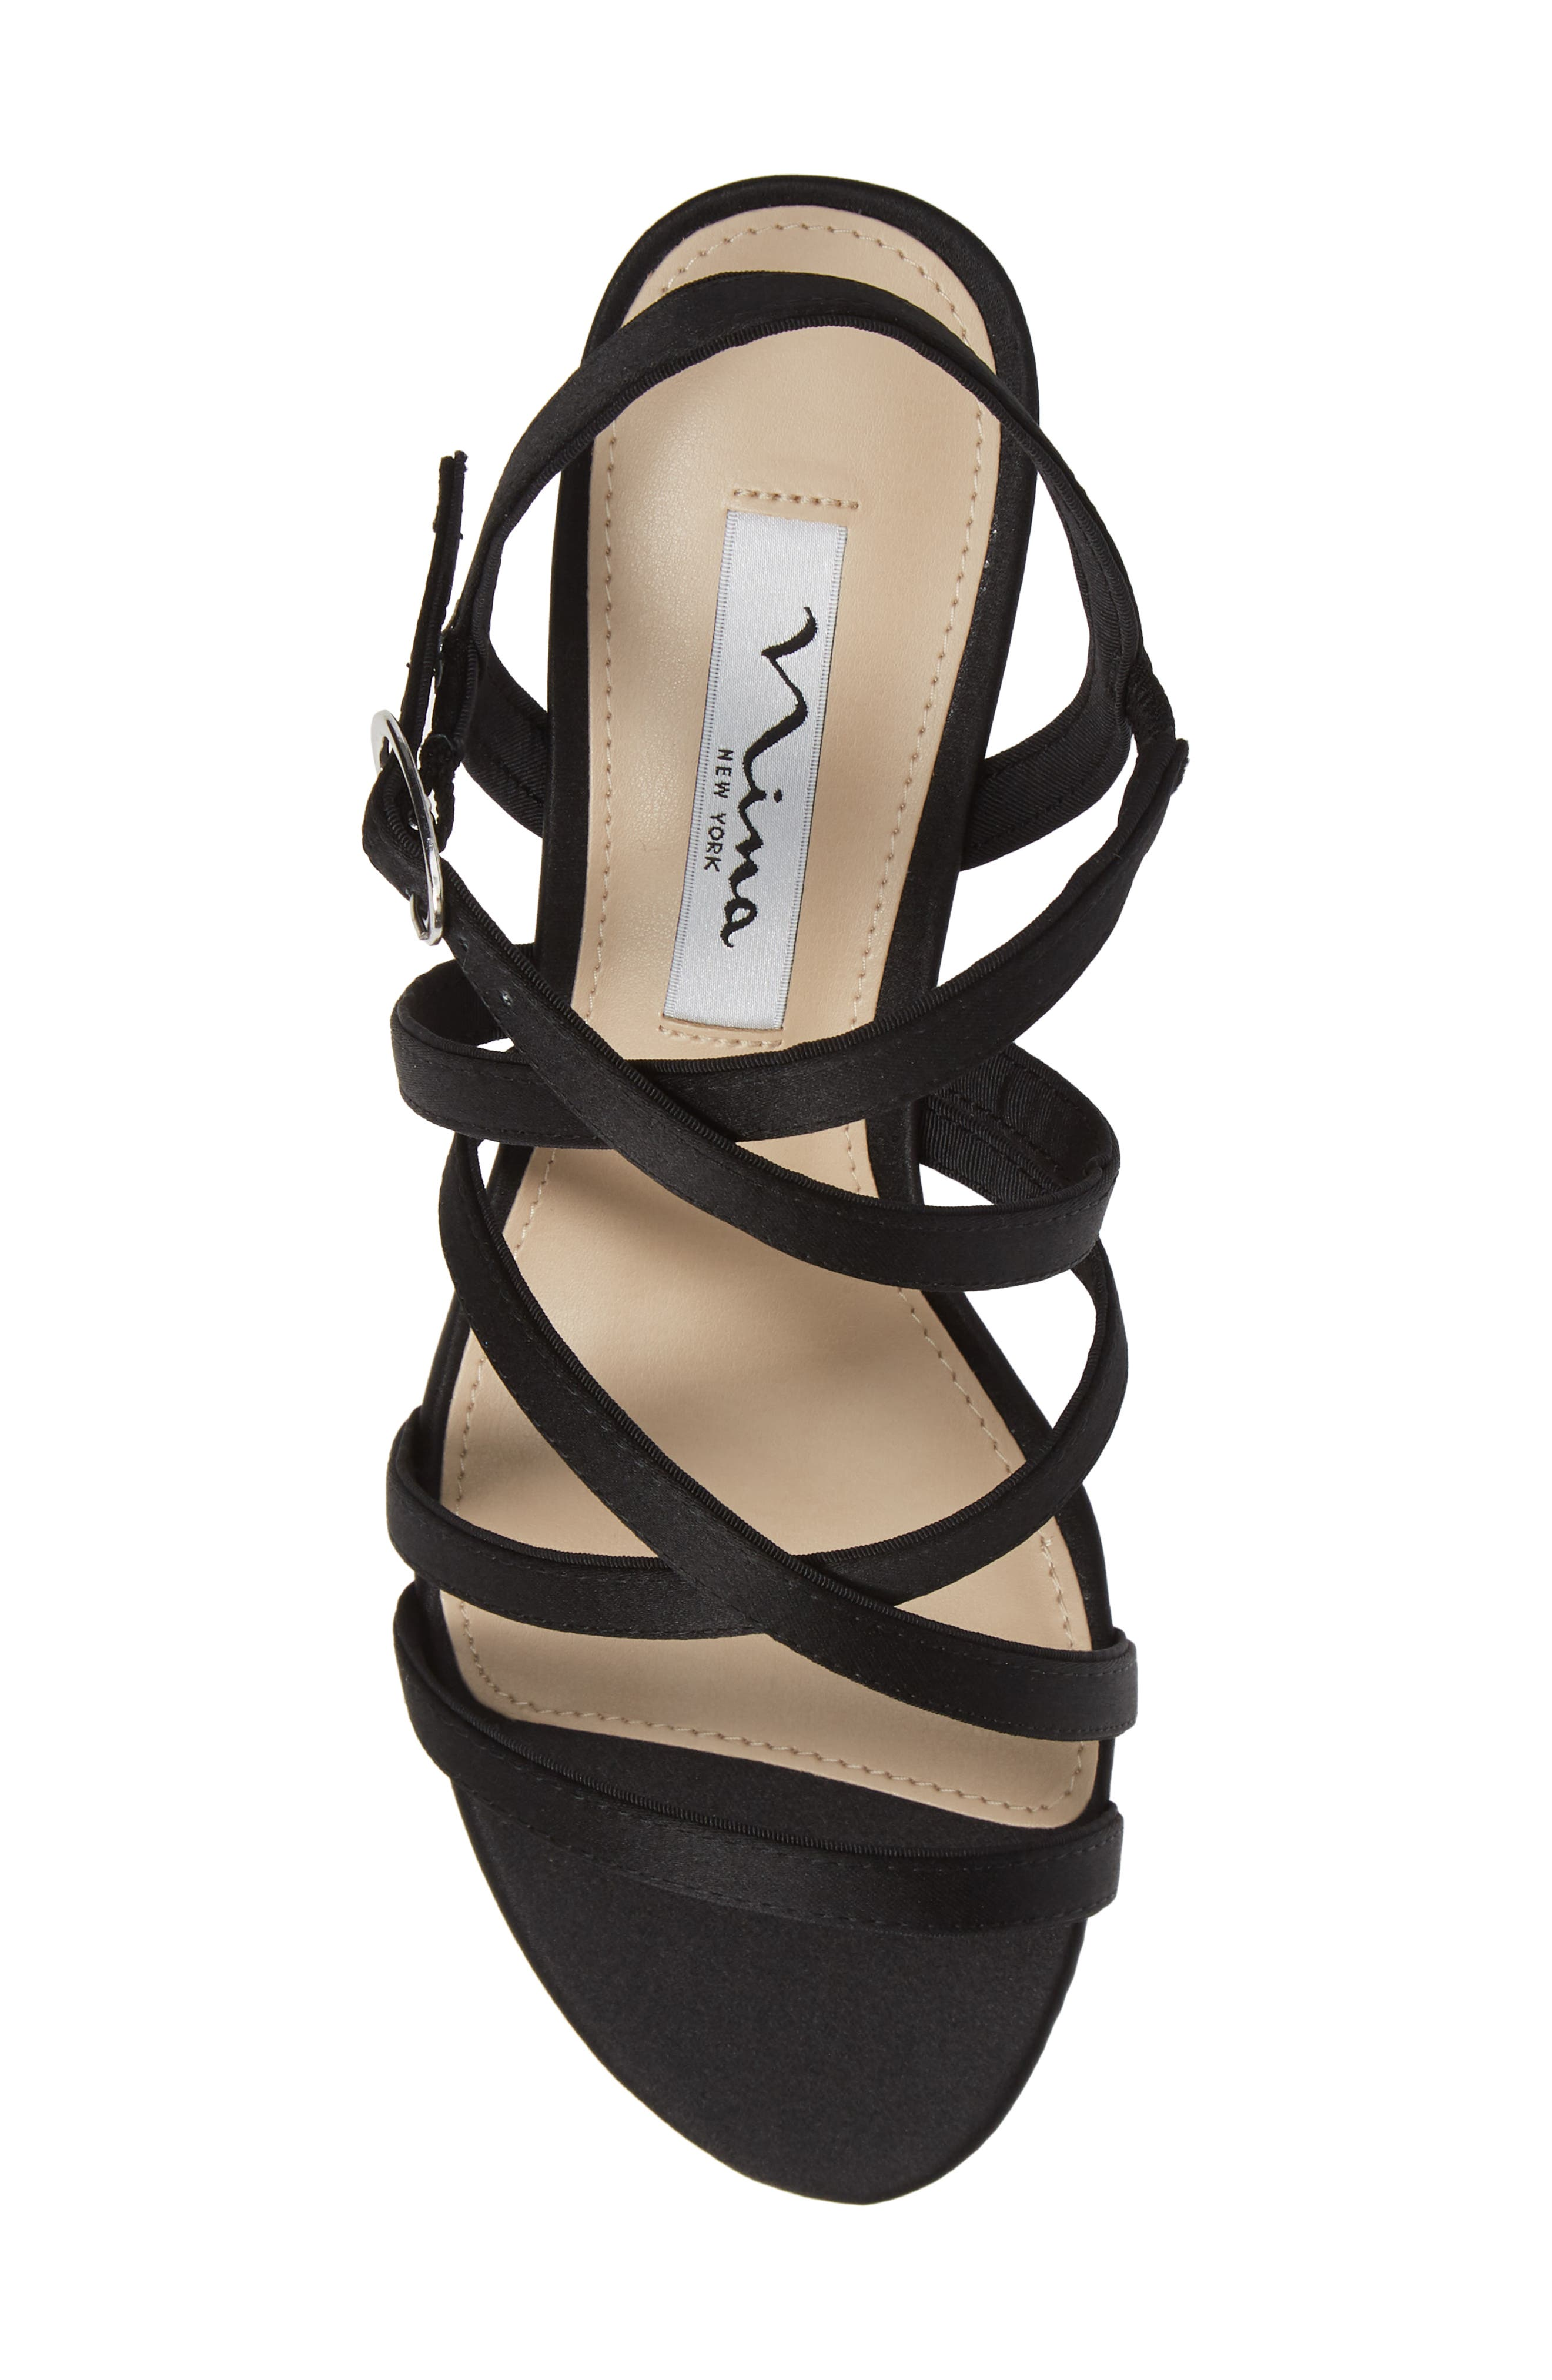 NINA, Genaya Strappy Evening Sandal, Alternate thumbnail 5, color, BLACK SATIN